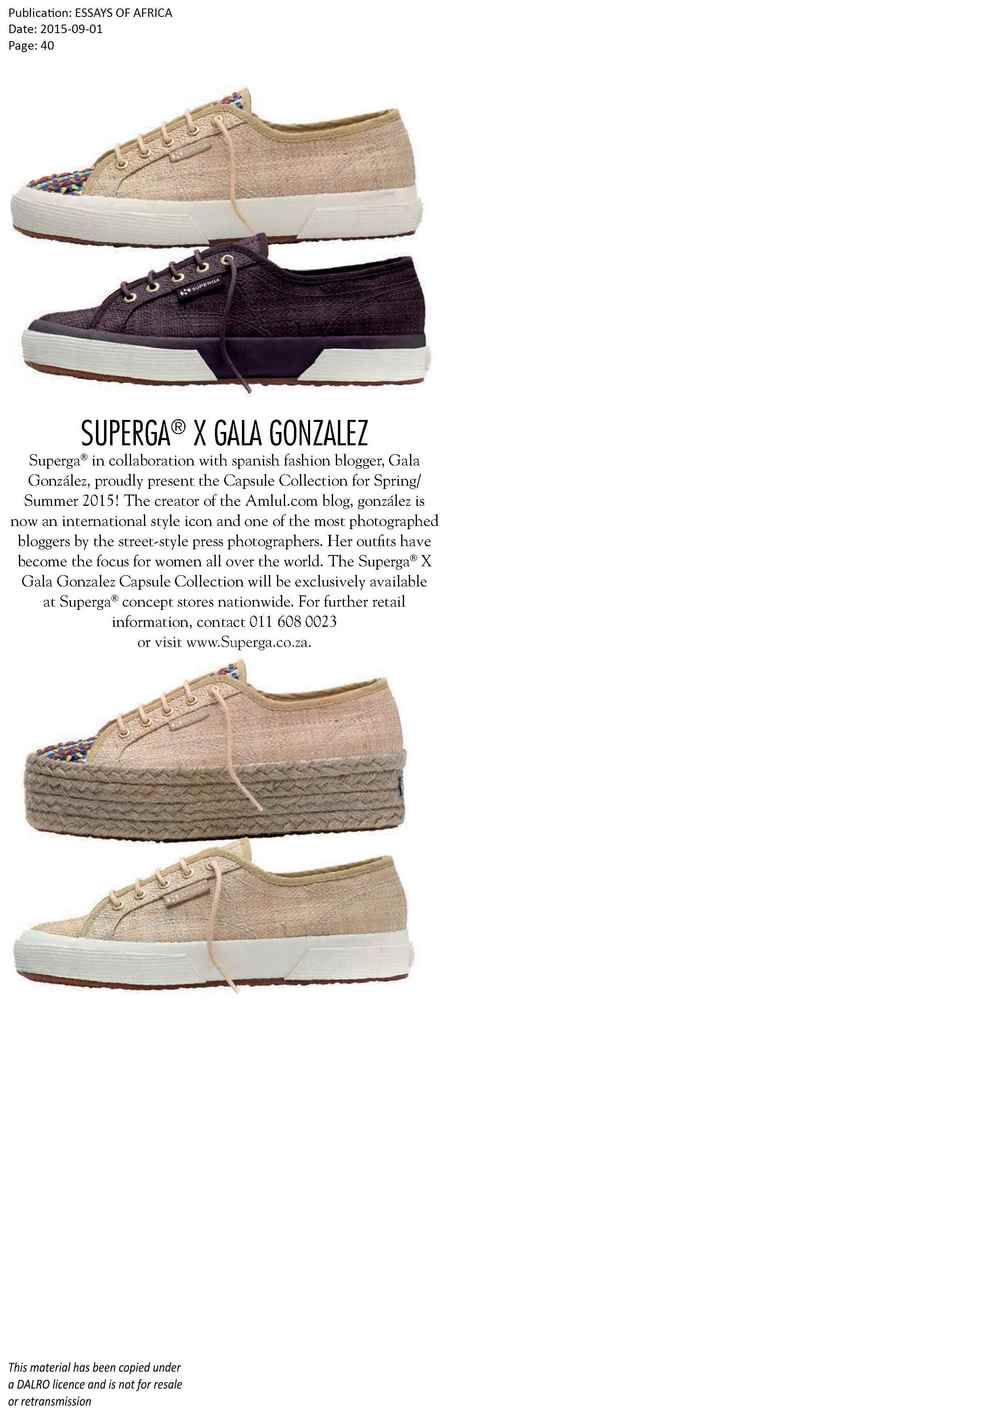 superga jkpr essays of africa 2015 jpg